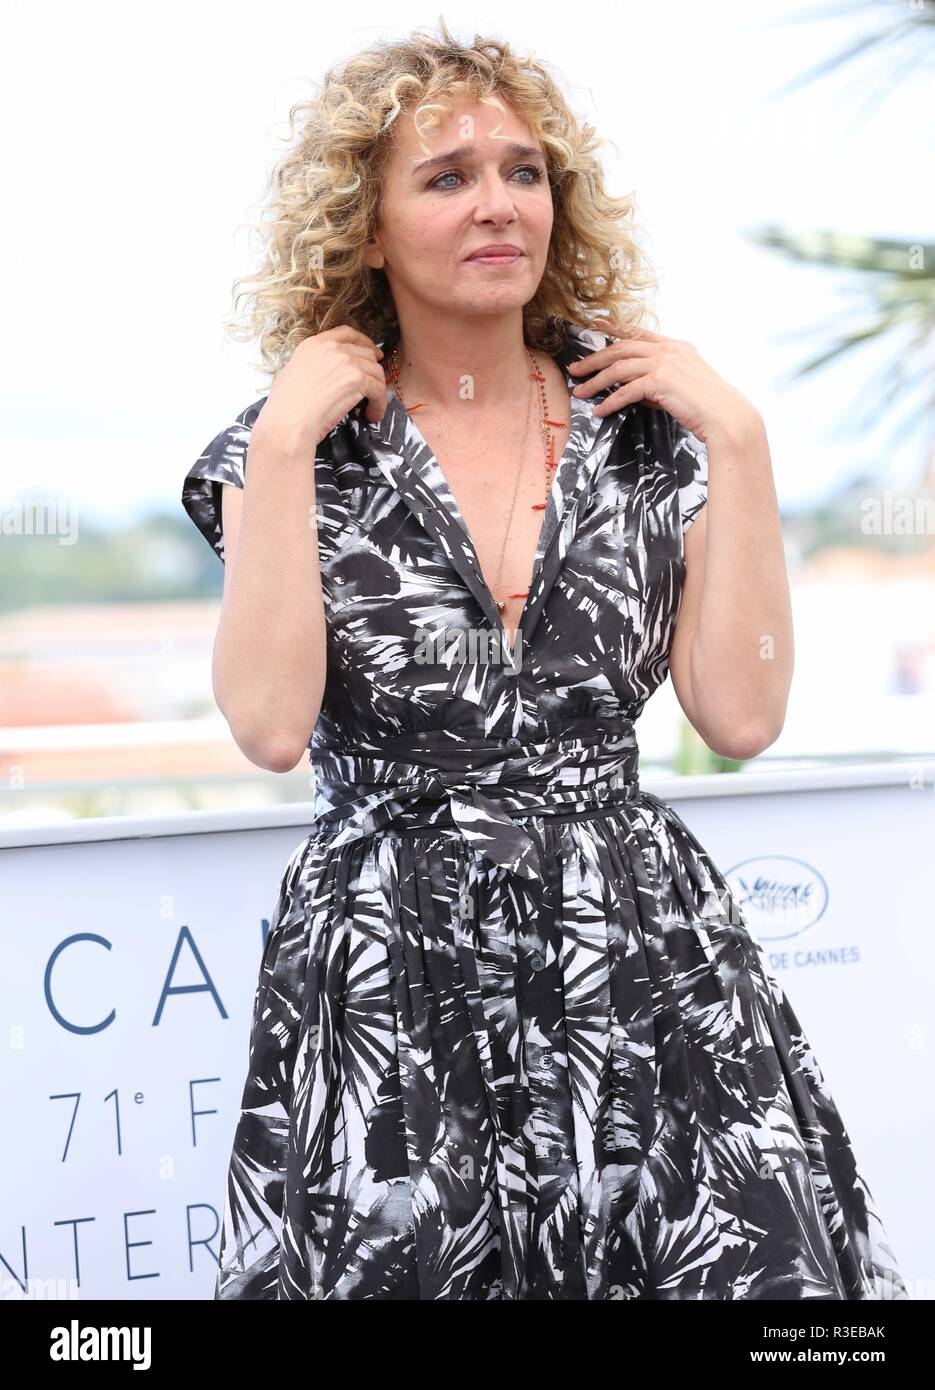 CANNES, FRANCE – MAY 15, 2018: Valeria Golino at the 'Euforia' photocall during the 71st Cannes Film Festival (photo by Mickael Chavet) - Stock Image